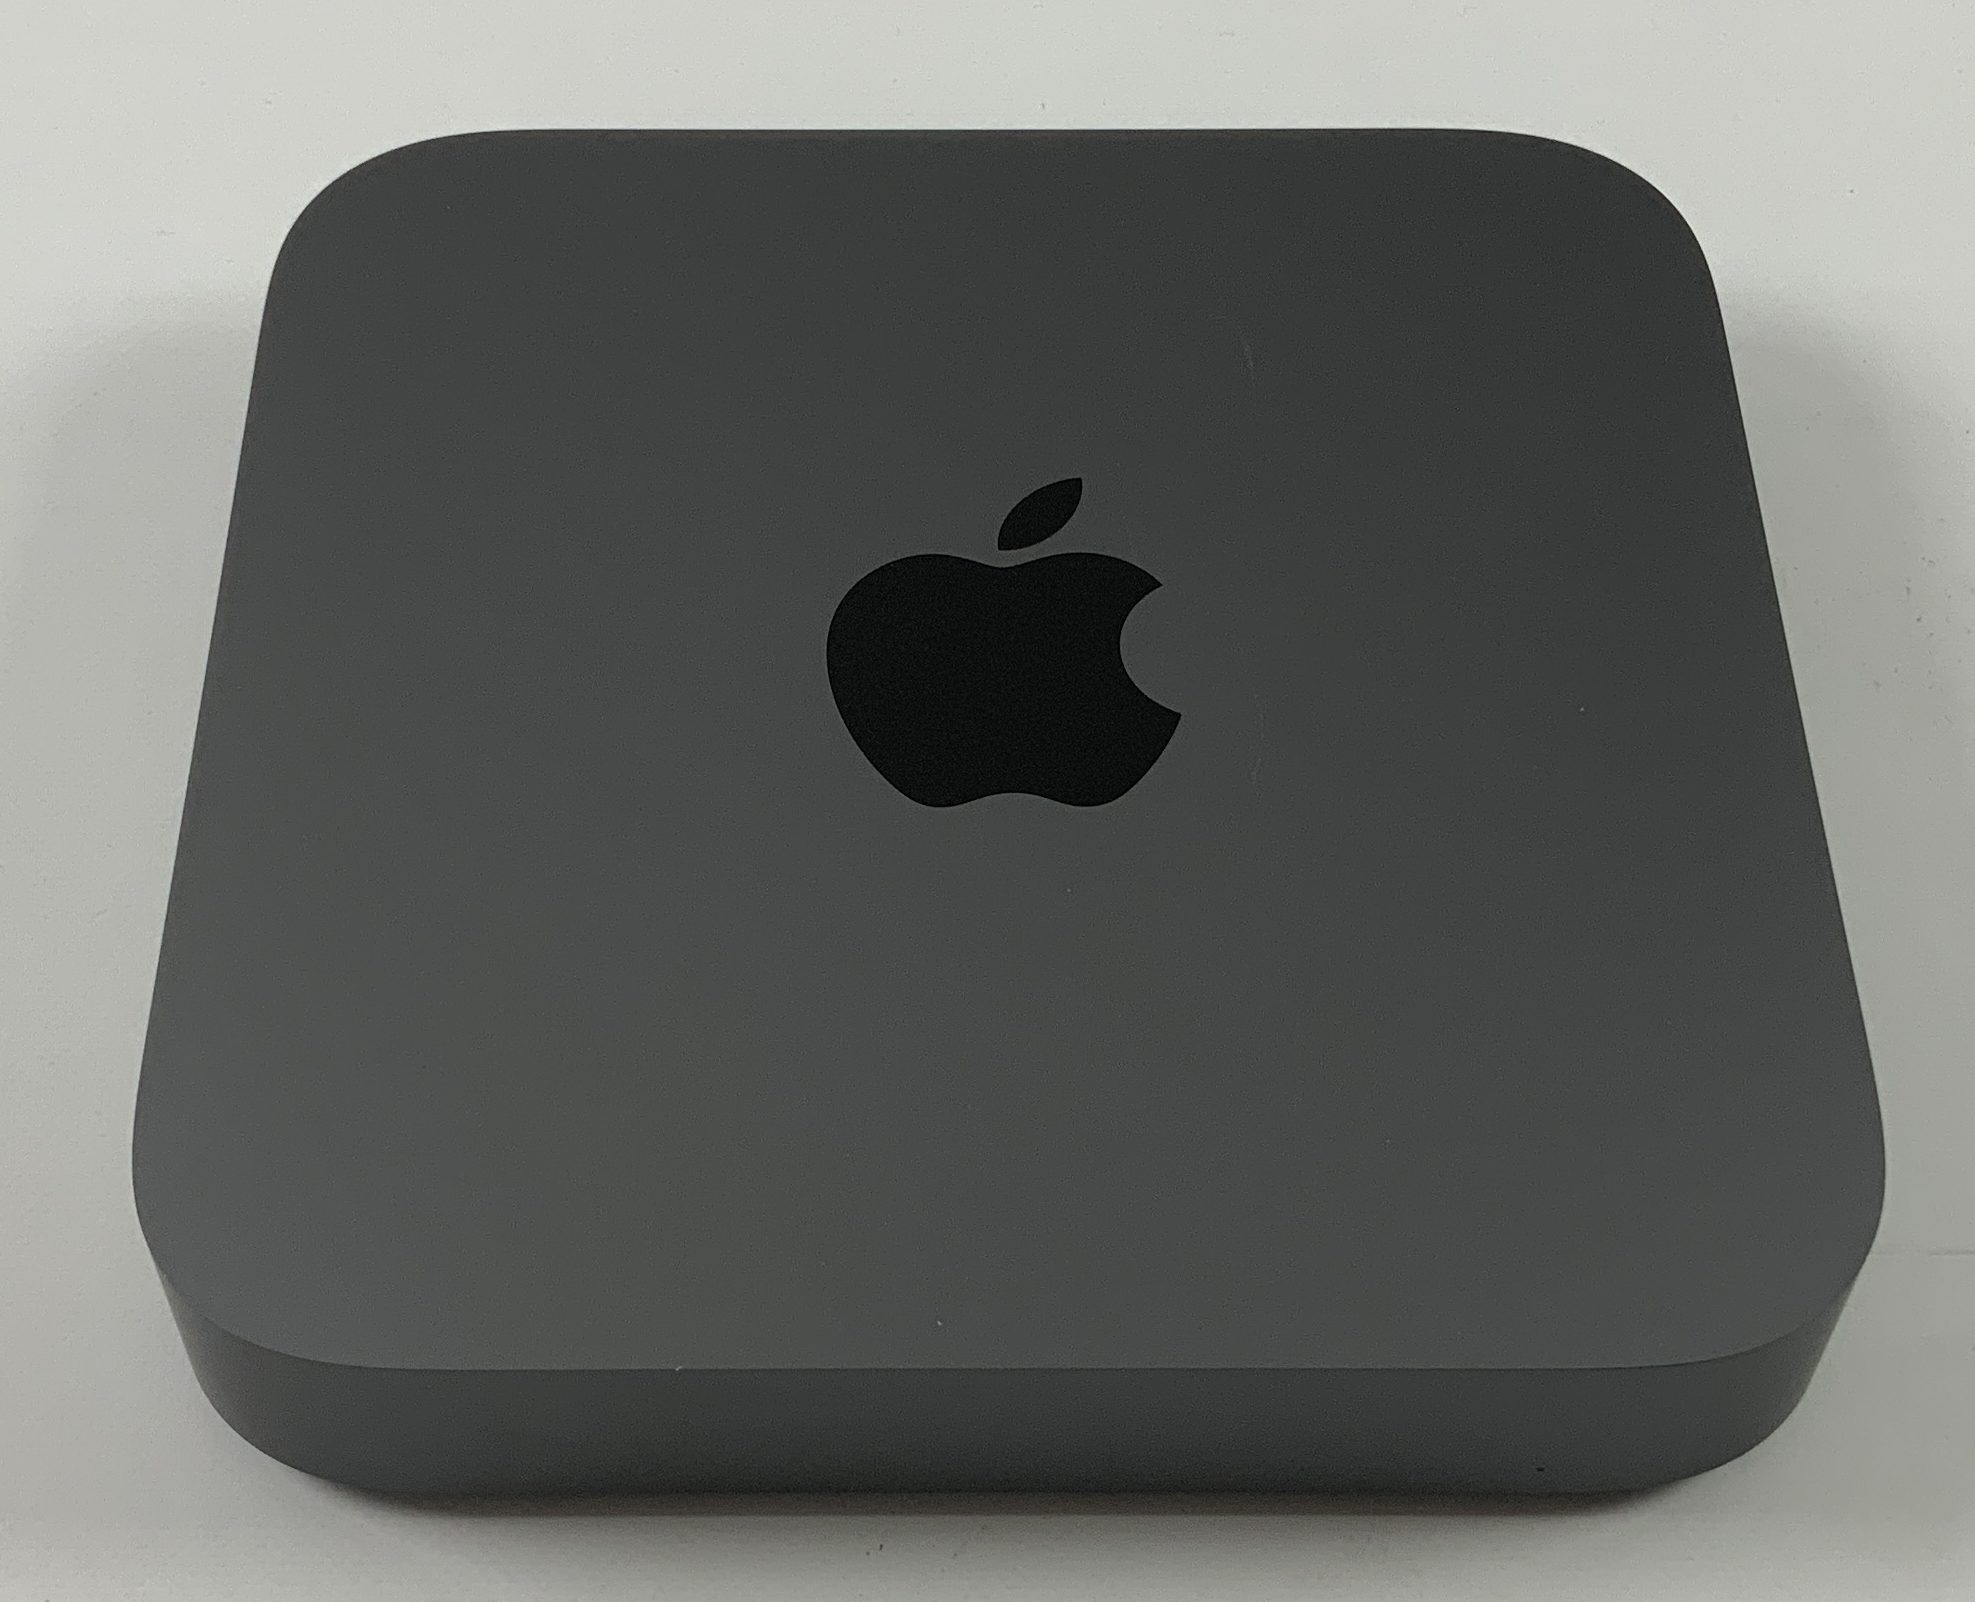 Mac Mini Late 2018 (Intel 6-Core i5 3.0 GHz 32 GB RAM 256 GB SSD), Intel 6-Core i5 3.0 GHz, 32 GB RAM, 256 GB SSD, Afbeelding 1